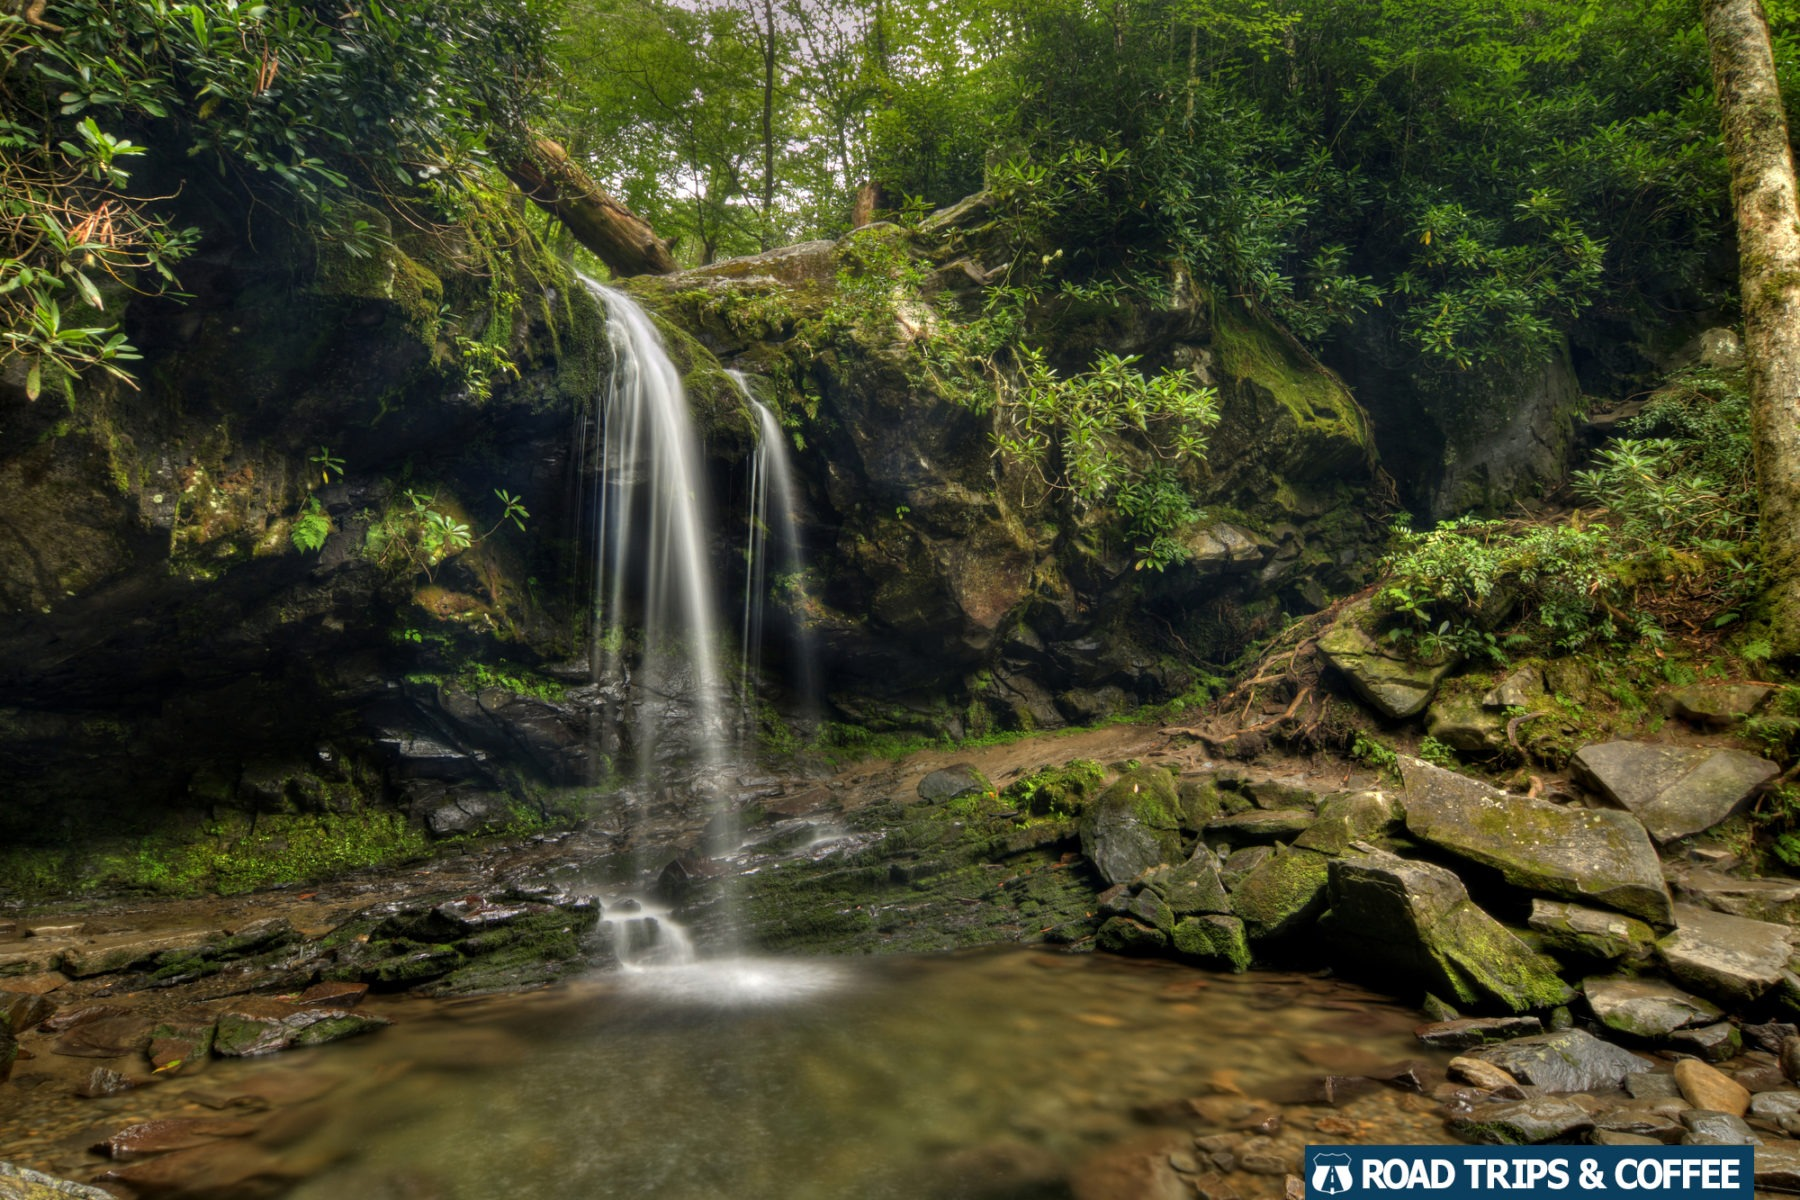 The small waterfall Grotto Falls in the Great Smoky Mountains National Park